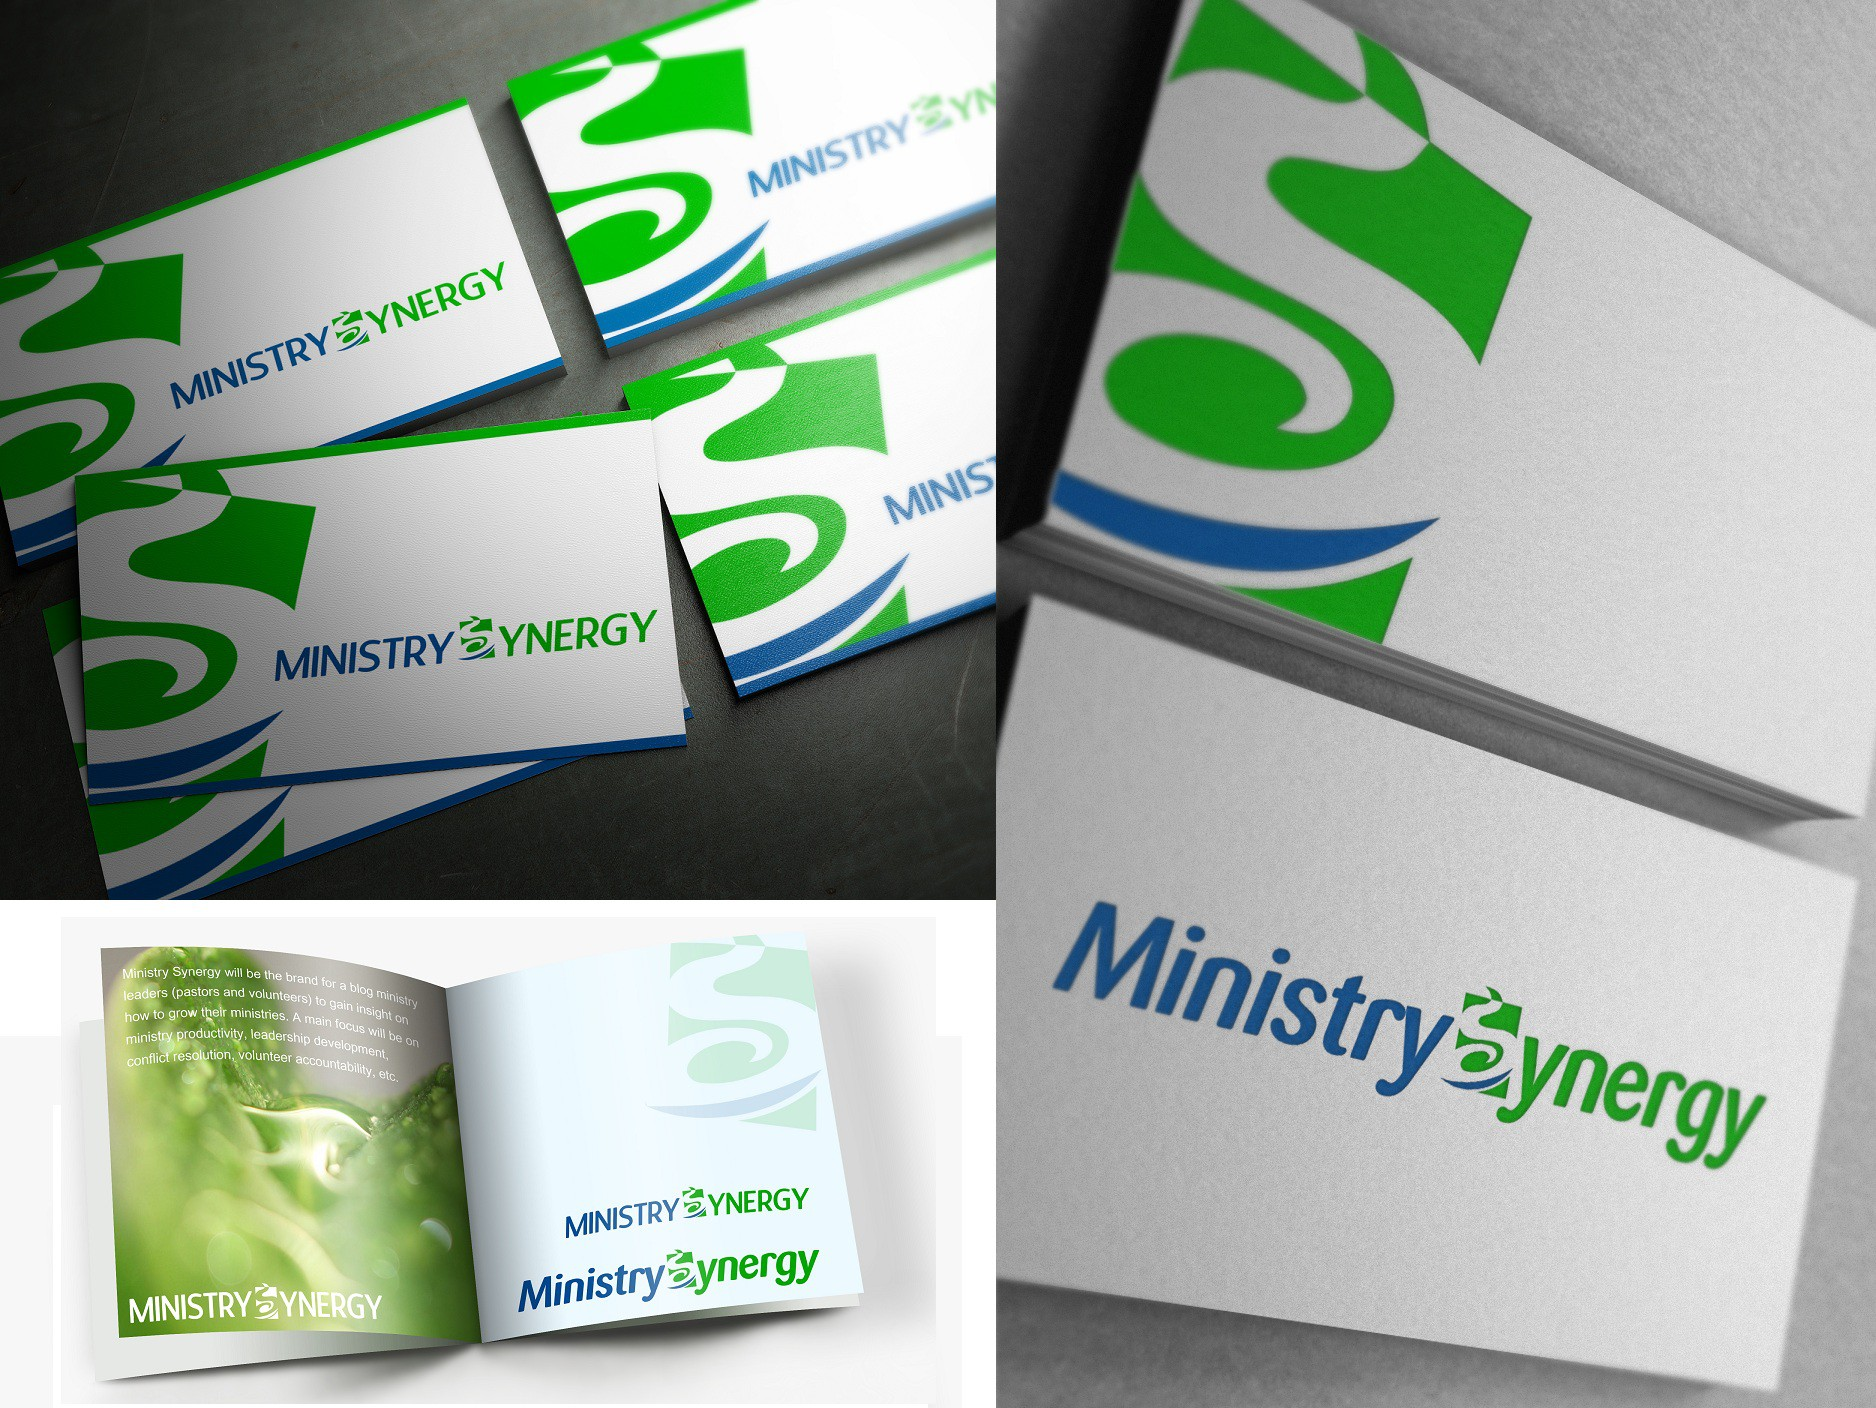 Create the next logo for Ministry Synergy